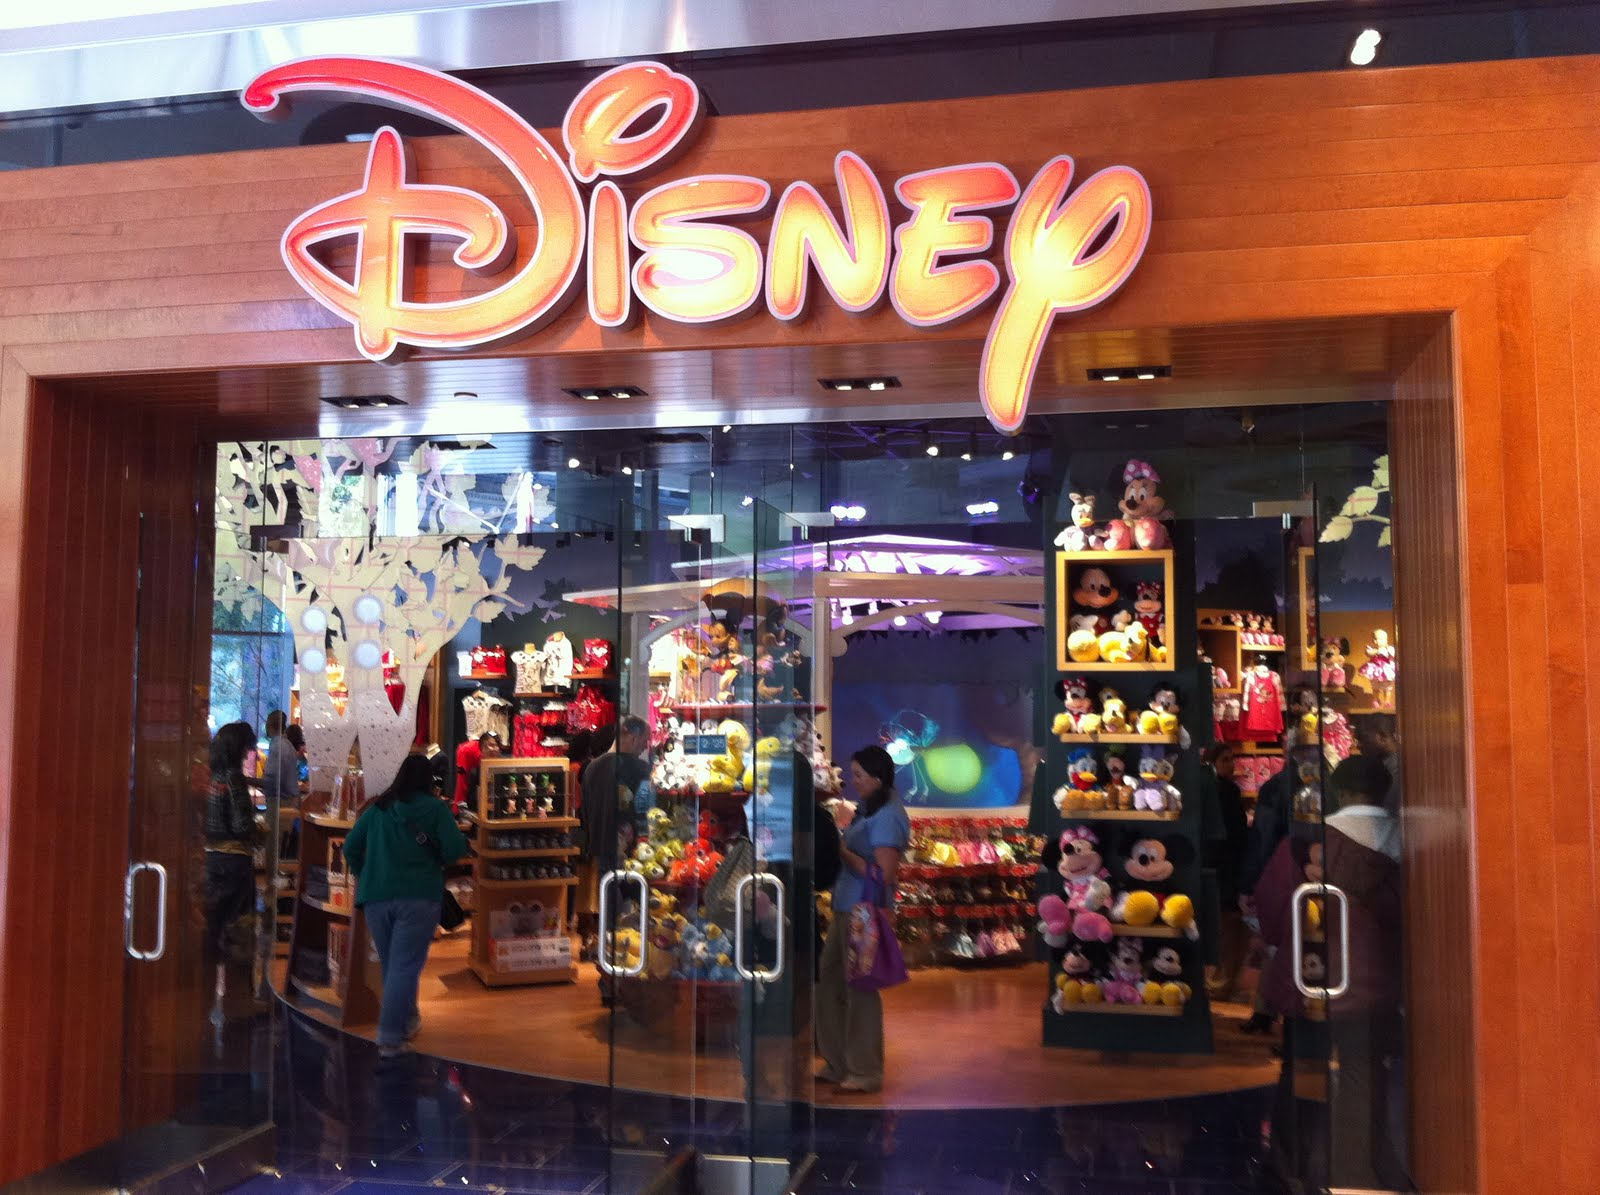 My Disney Mania: New Disney Store Opens In Downtown Chicagou0027s Block 37 Shops